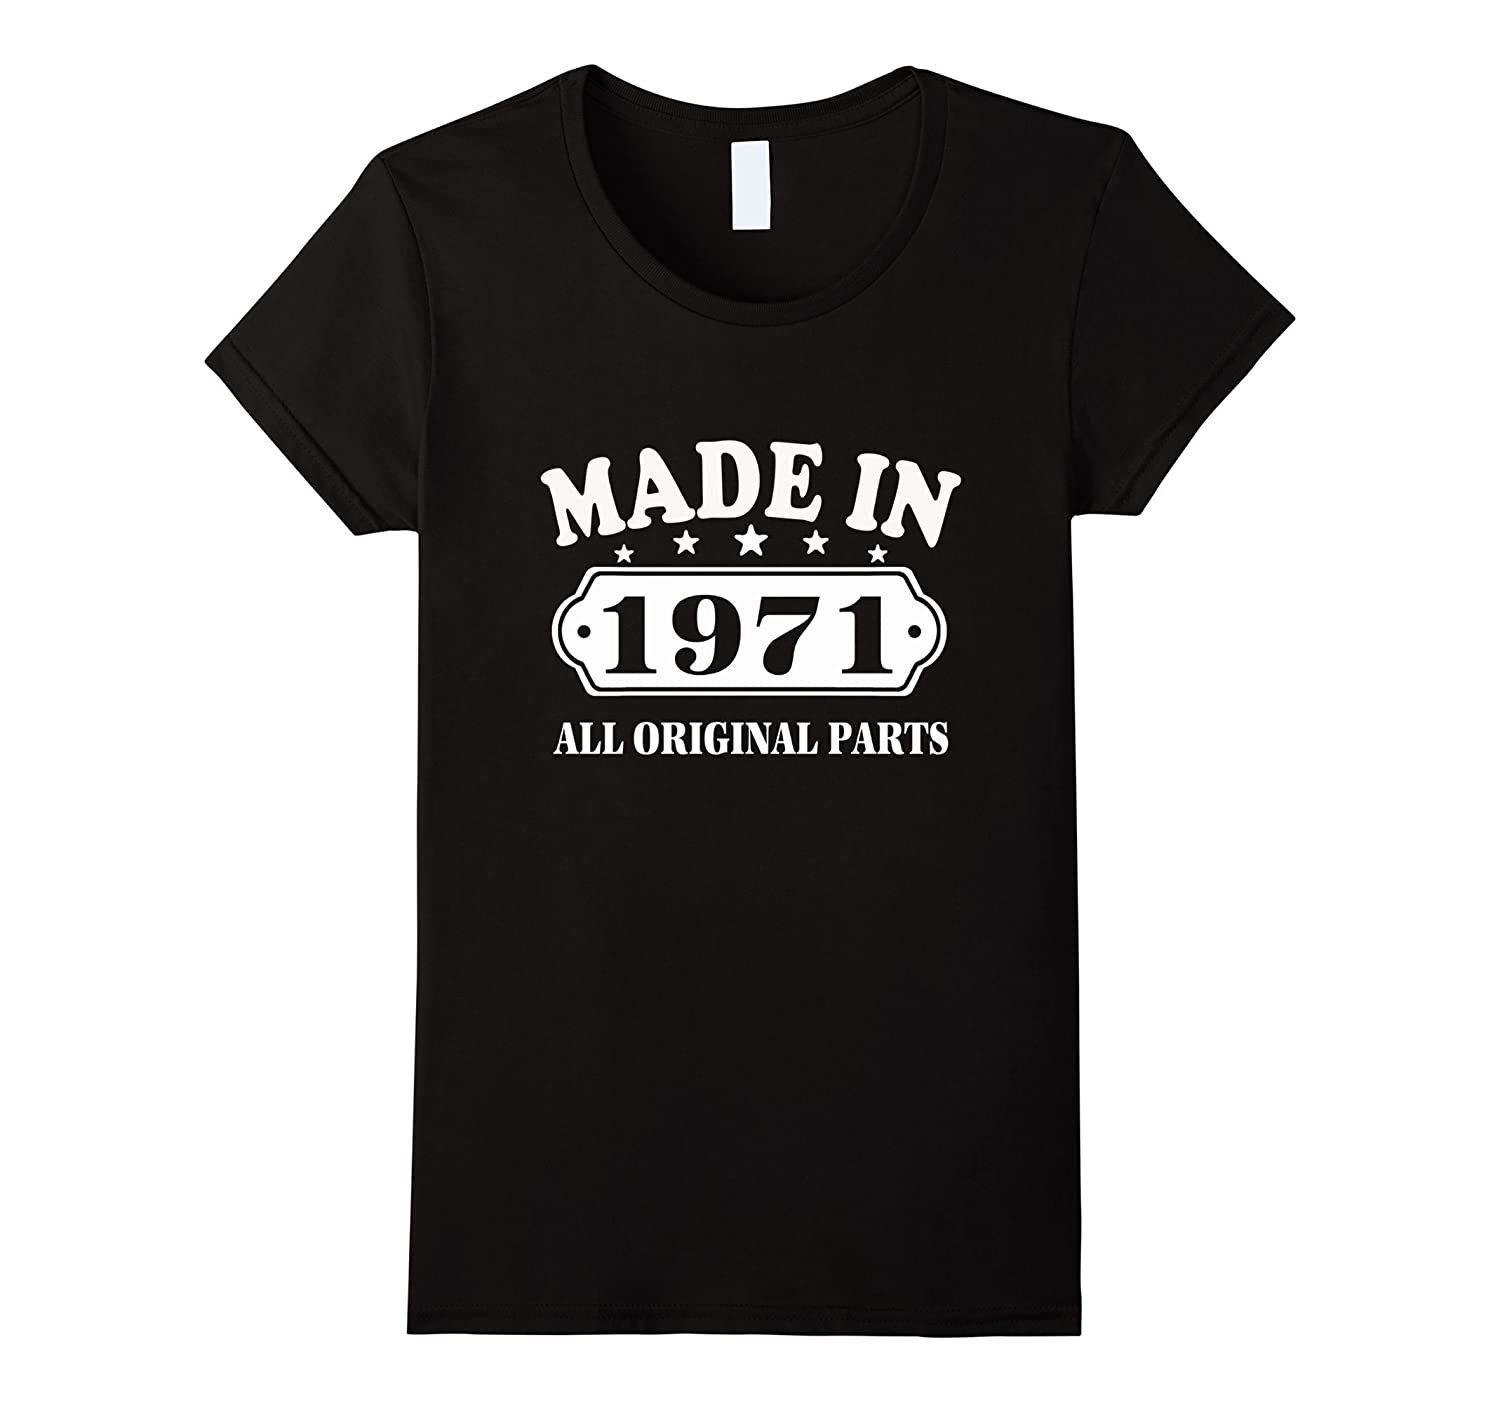 46 Birthday T-Shirt Vintage Made in 1971 ideas Man Shirt